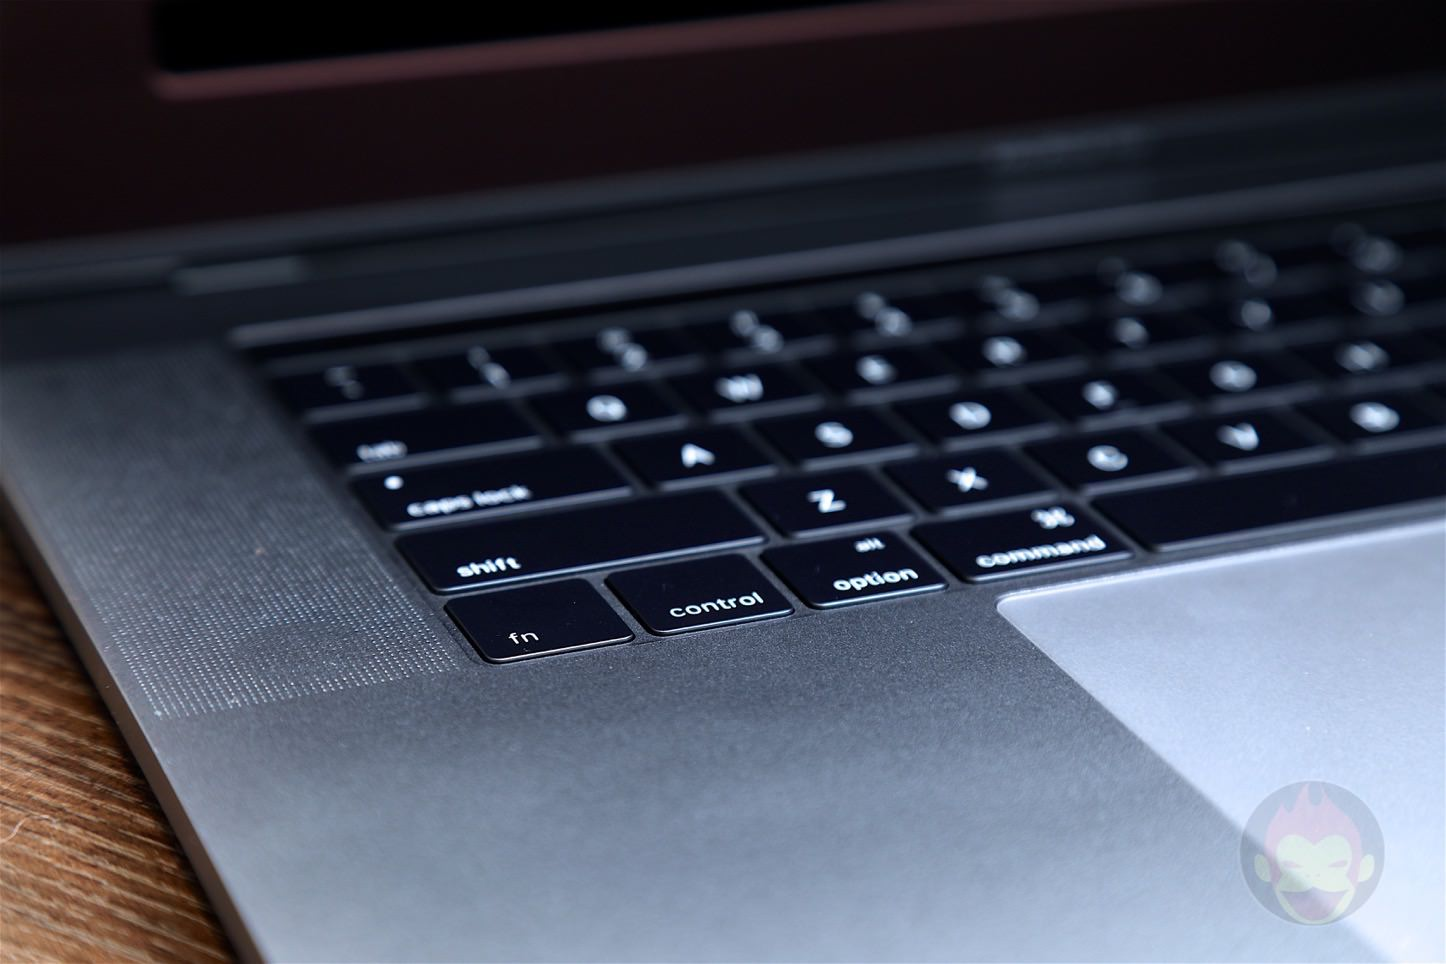 MacBook Pro Late 2016 15inch model